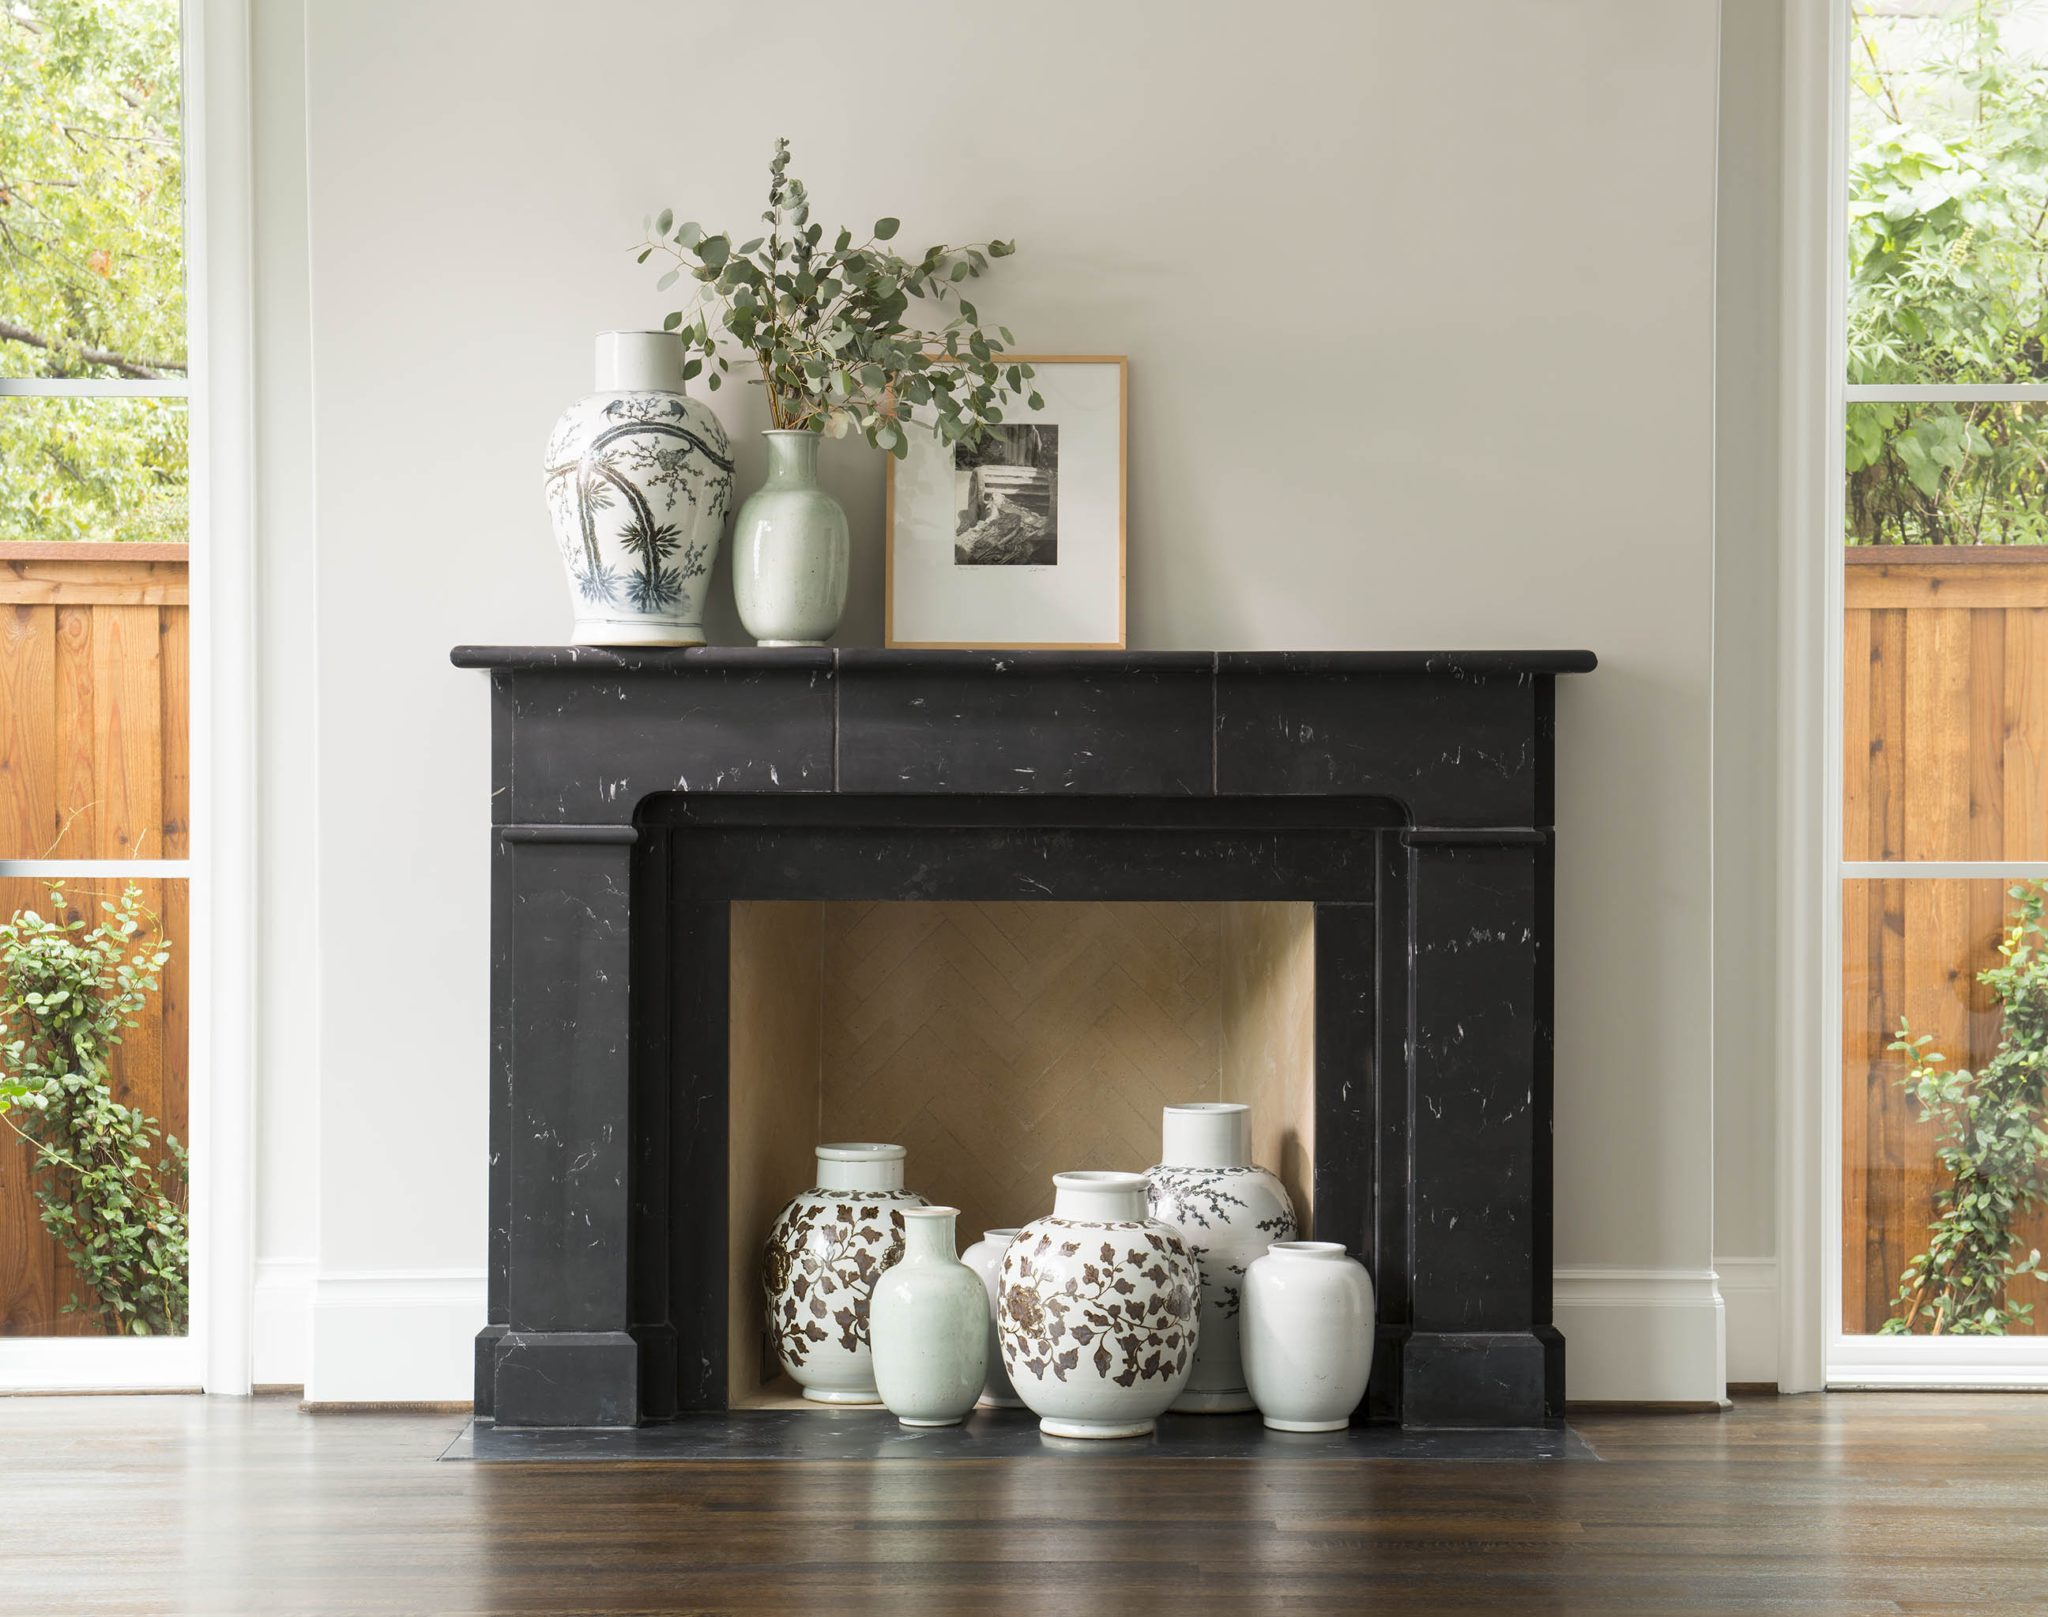 Custom Living Room Fireplace by Denise McGaha Interiors